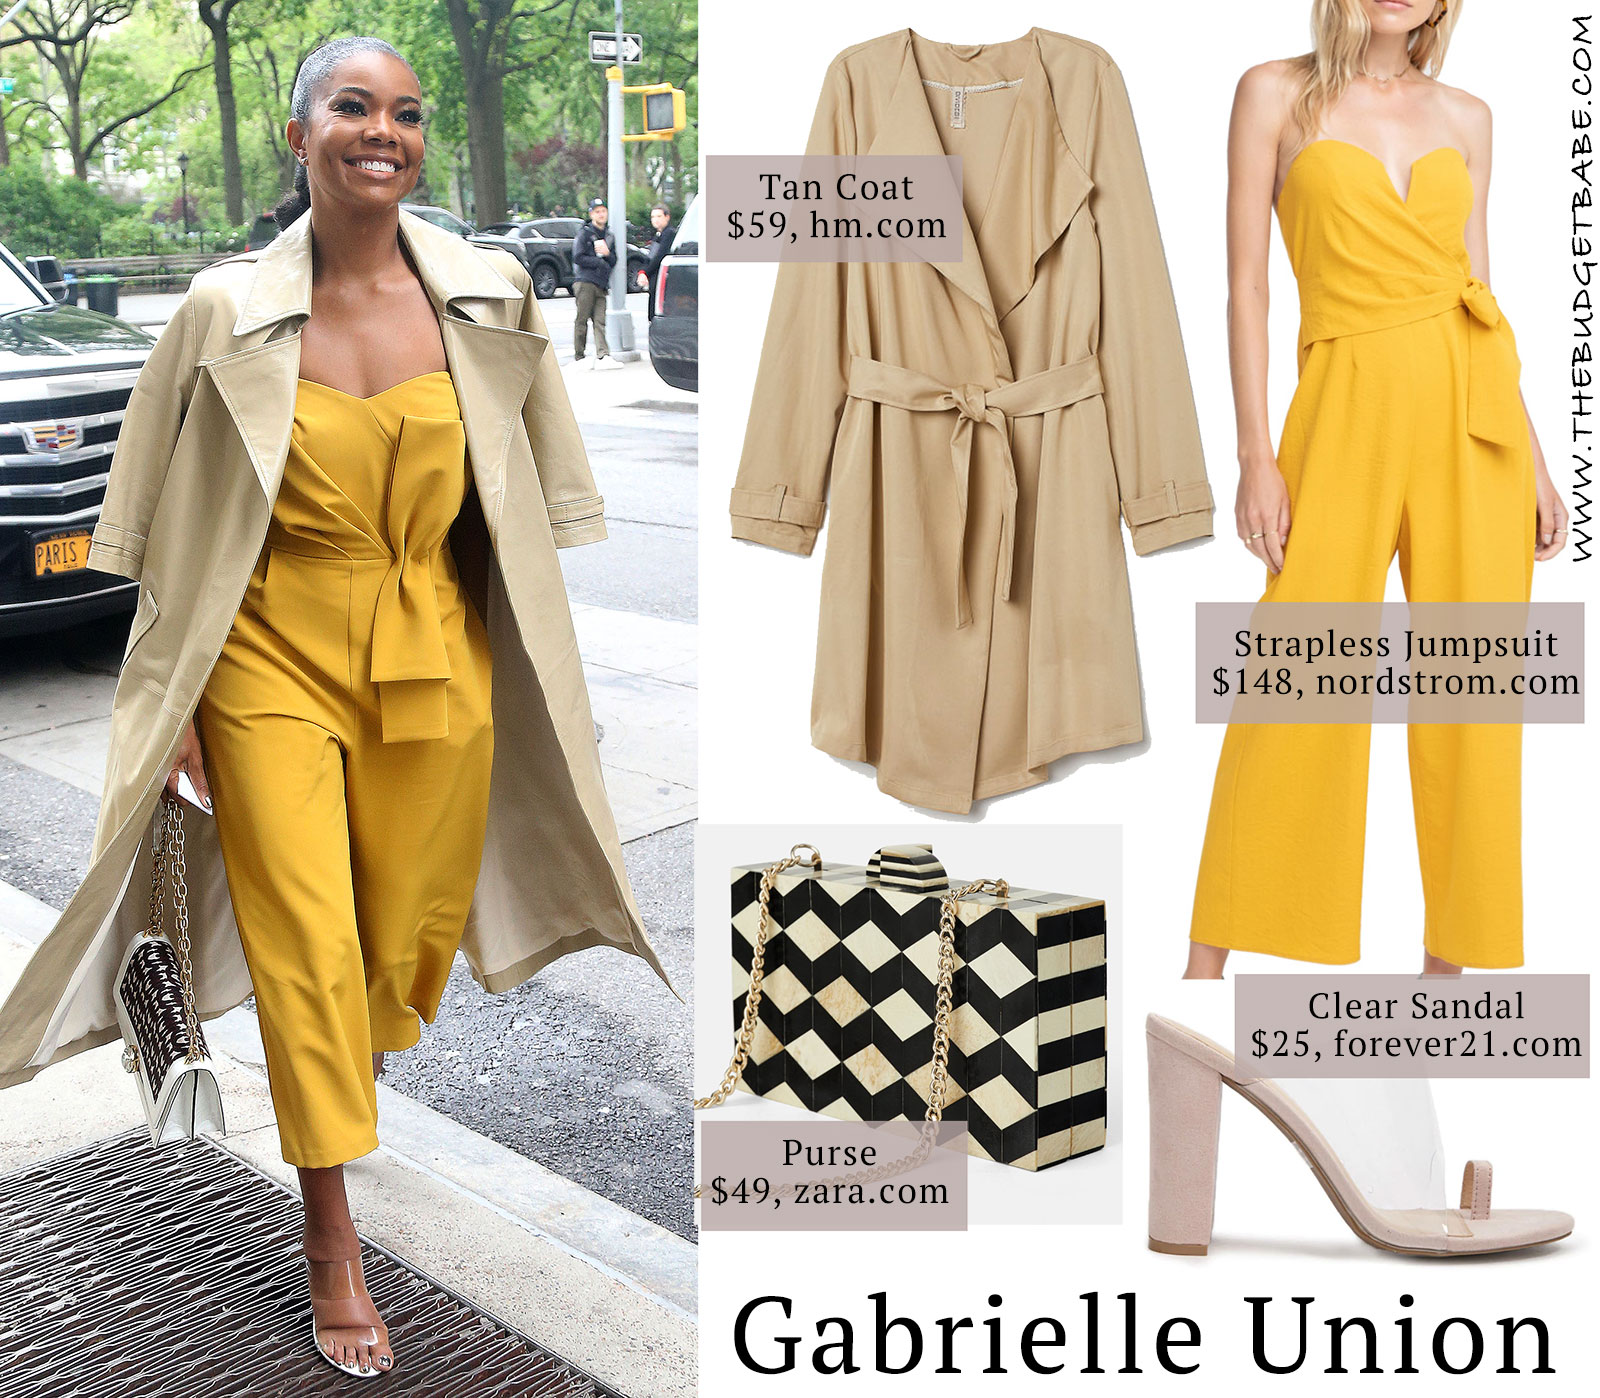 e4e0f74bc55 Gabrielle Union s yellow jumpsuit and clear sandals look for less